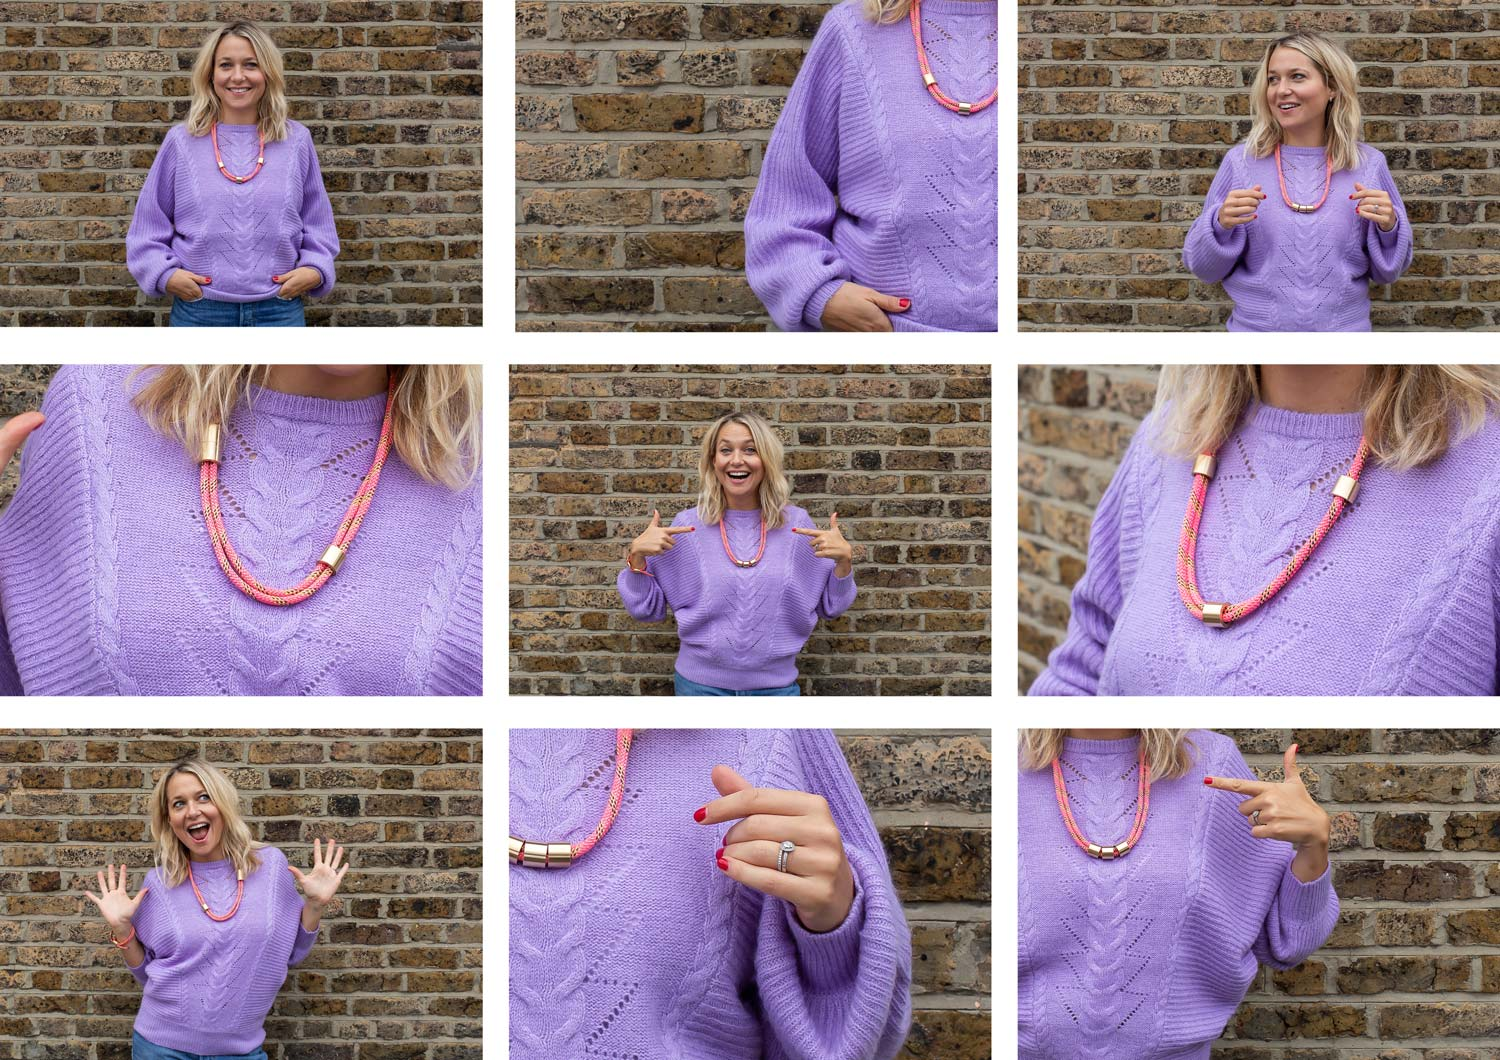 How to wear Alice Made This necklaces